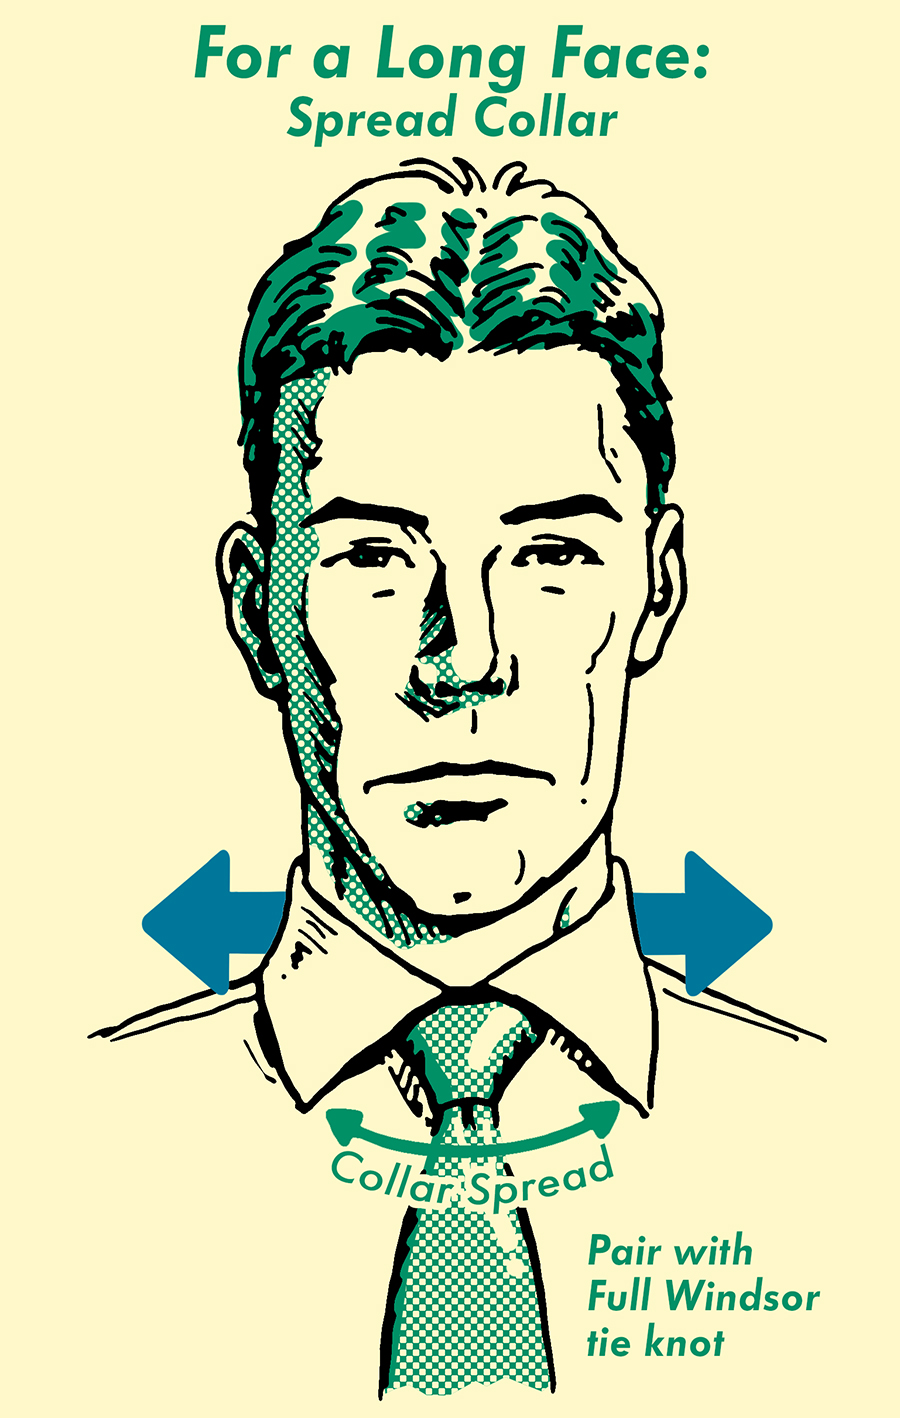 A long face man with spread collar illustration.